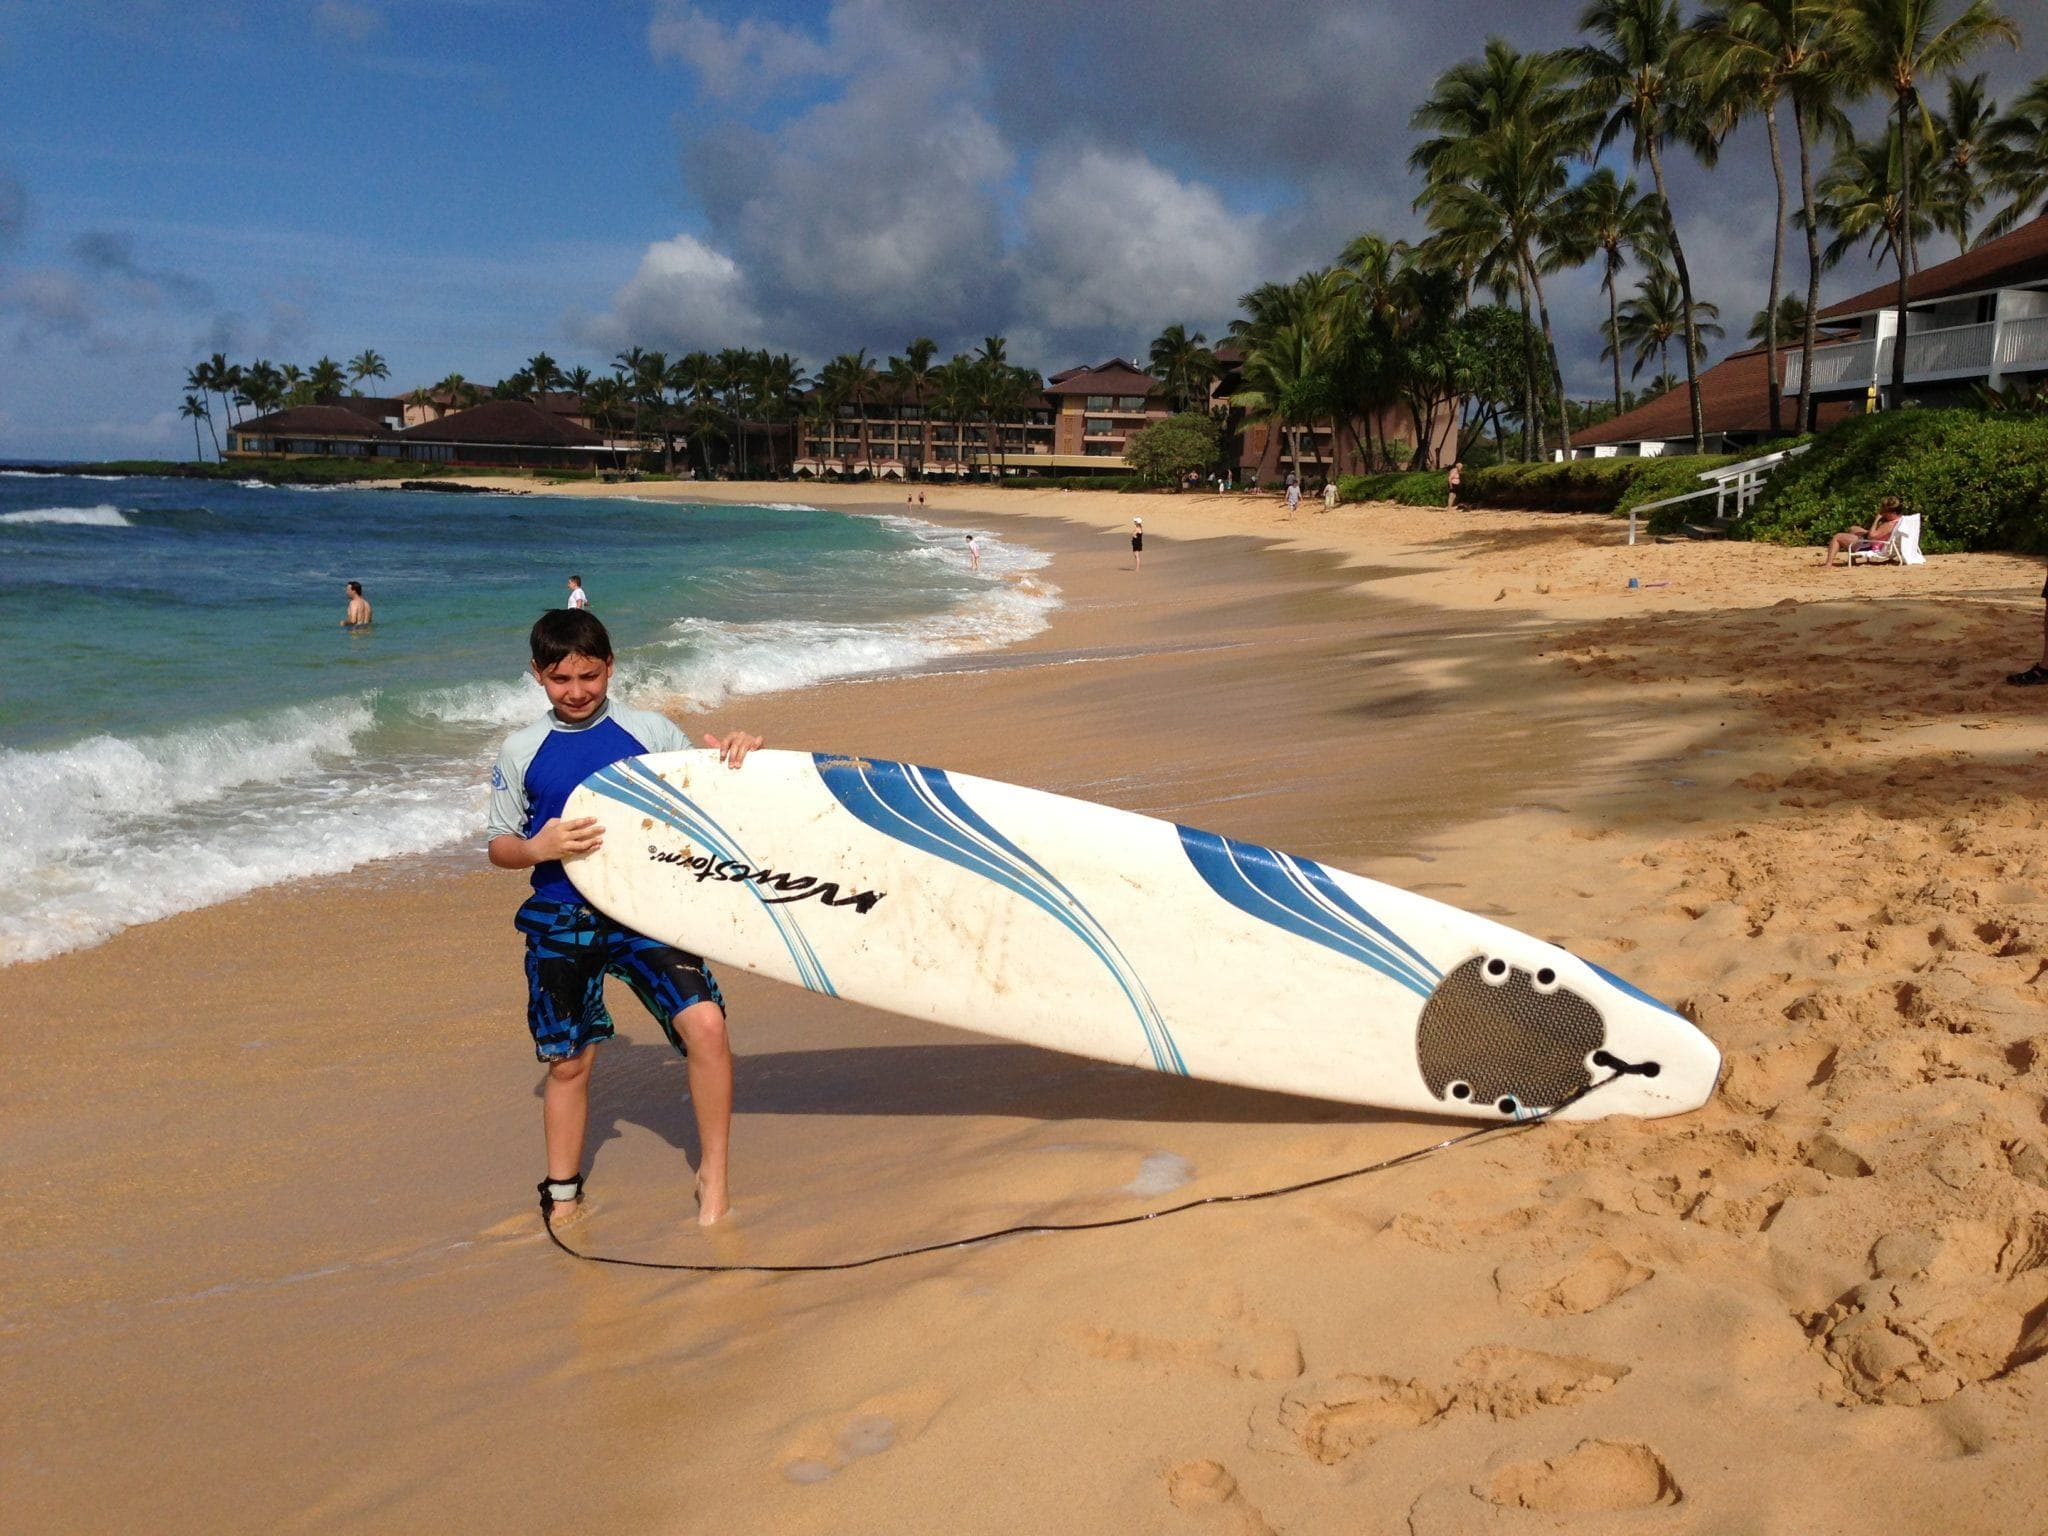 Learning to surf is hard work!